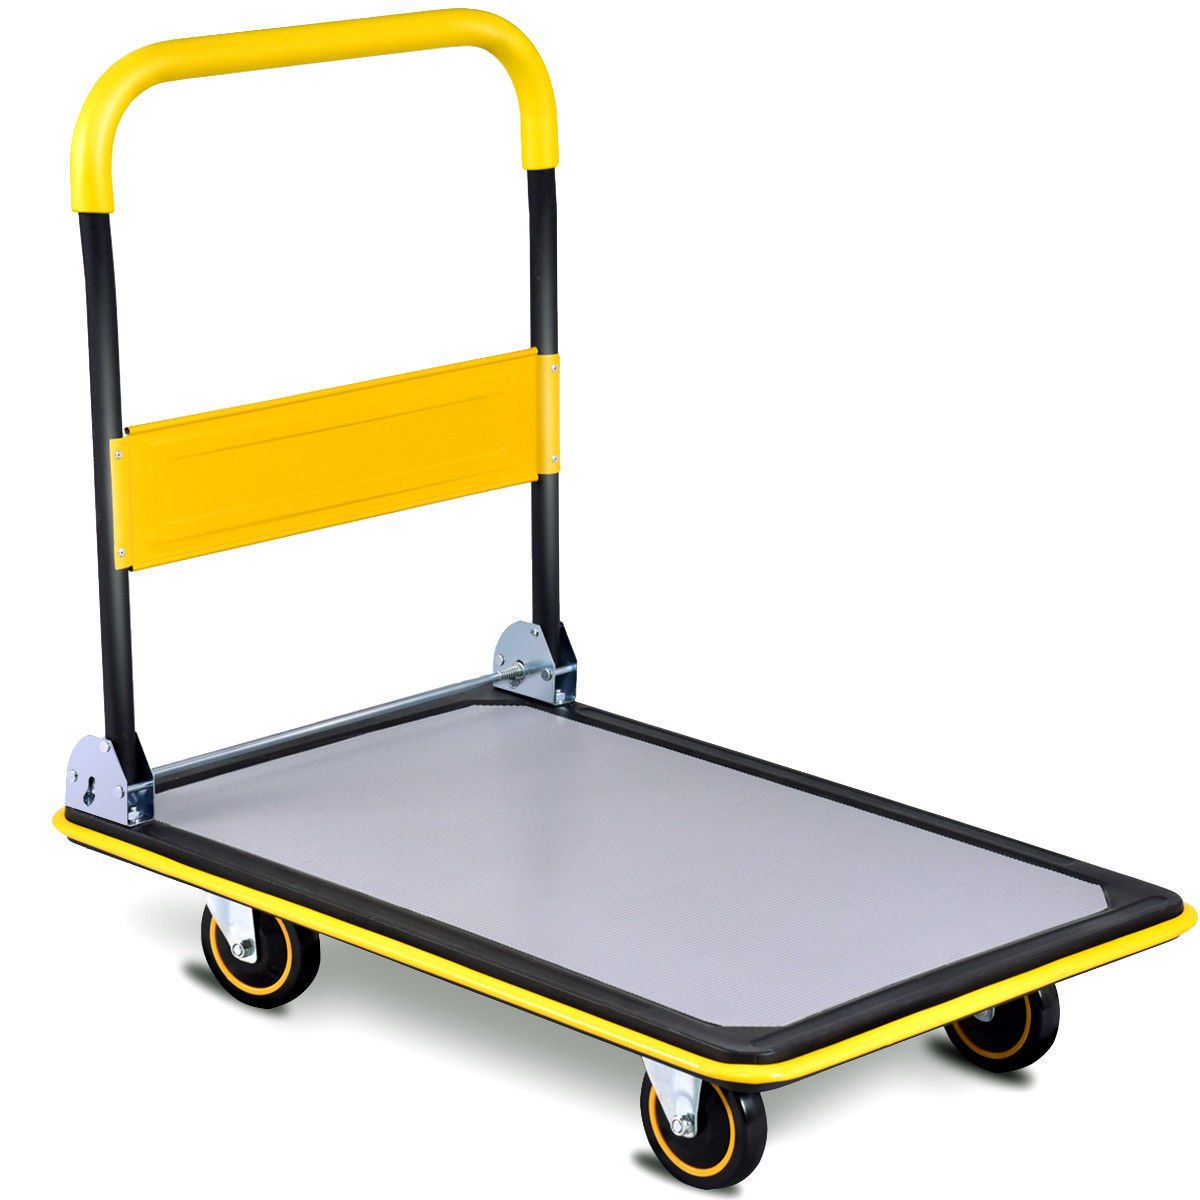 Seleq Foldable Platform Push Cart Dolly with Rubber Grip Handrail - 660 lbs Capacity